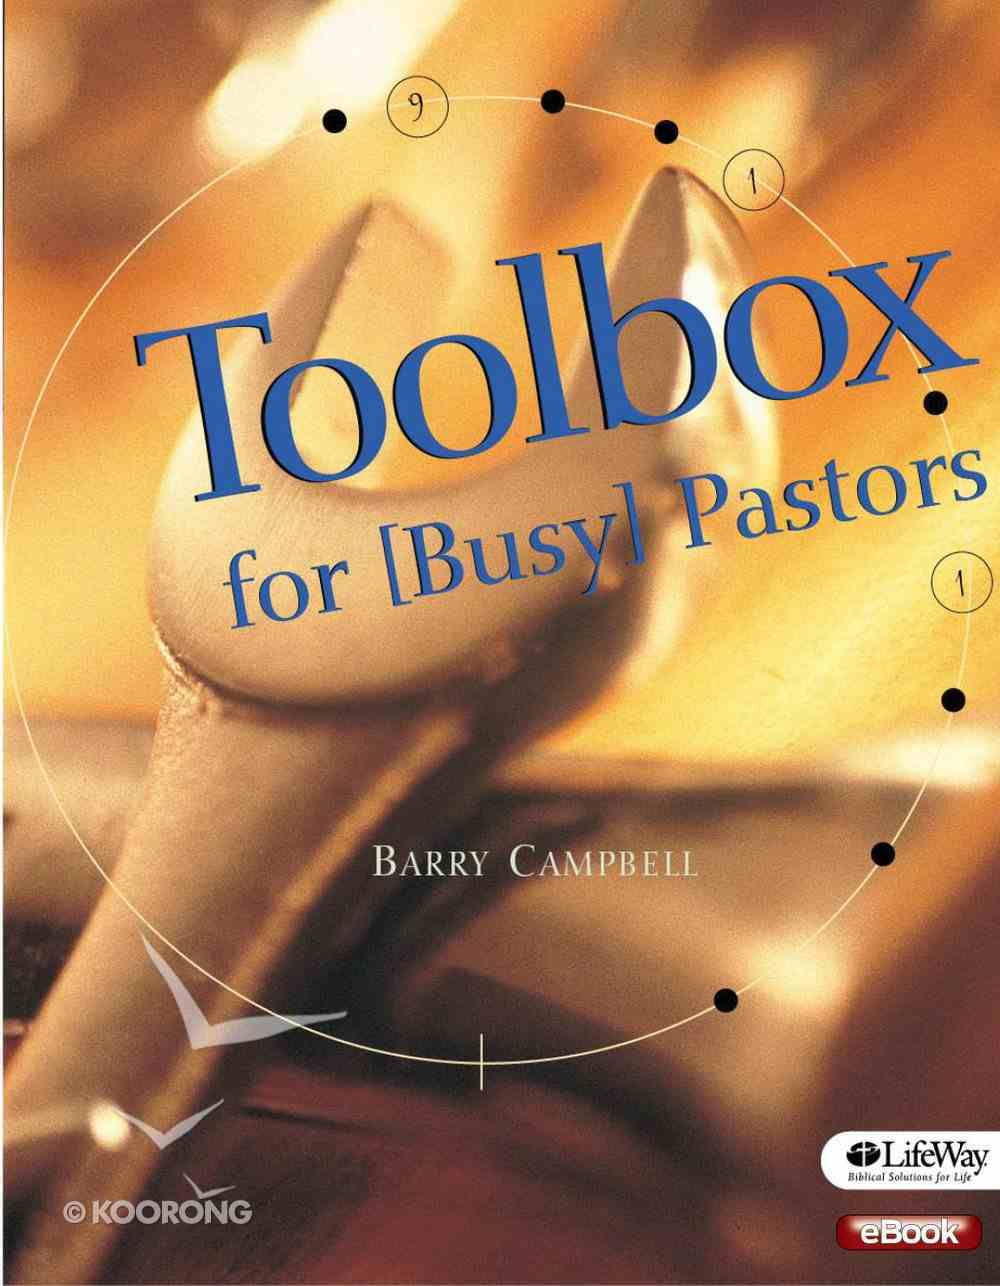 Toolbox For Busy Pastors eBook